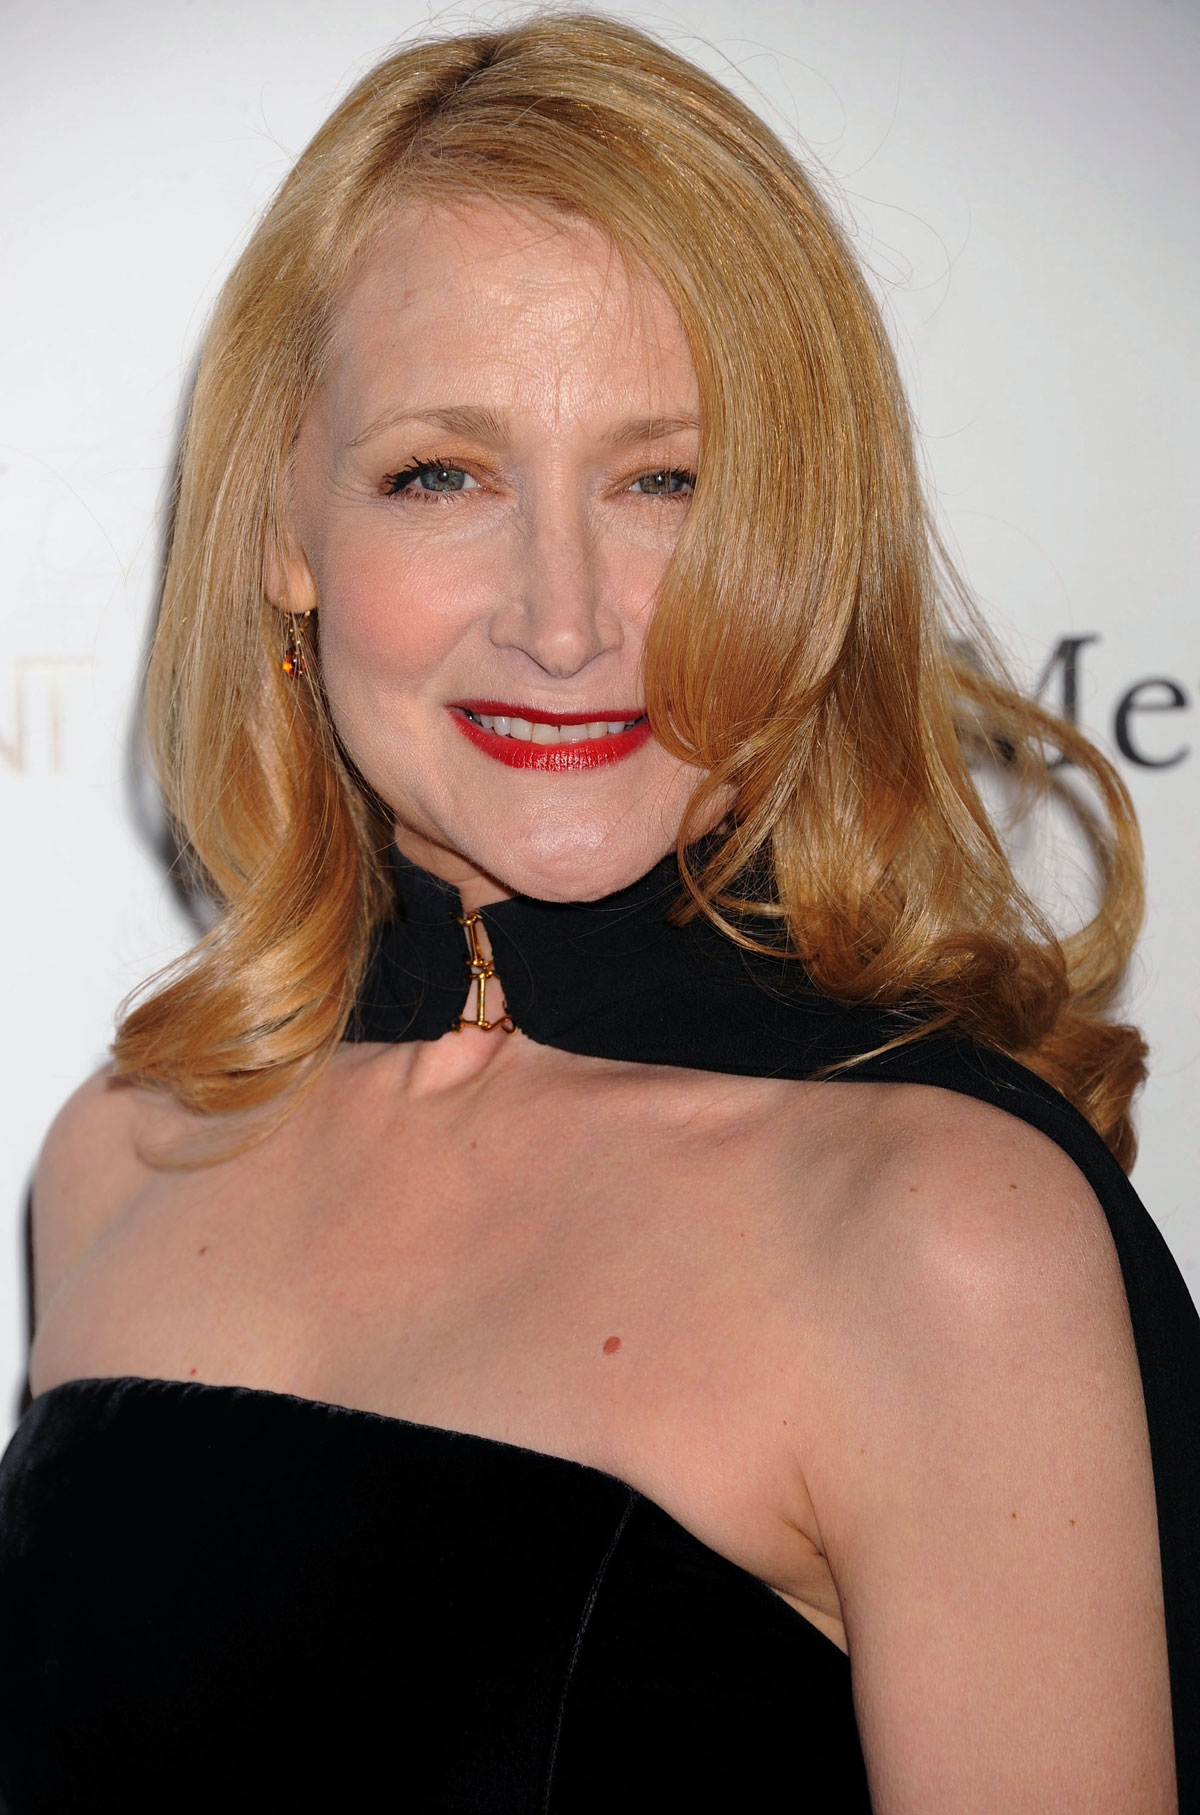 patricia clarkson house of cards